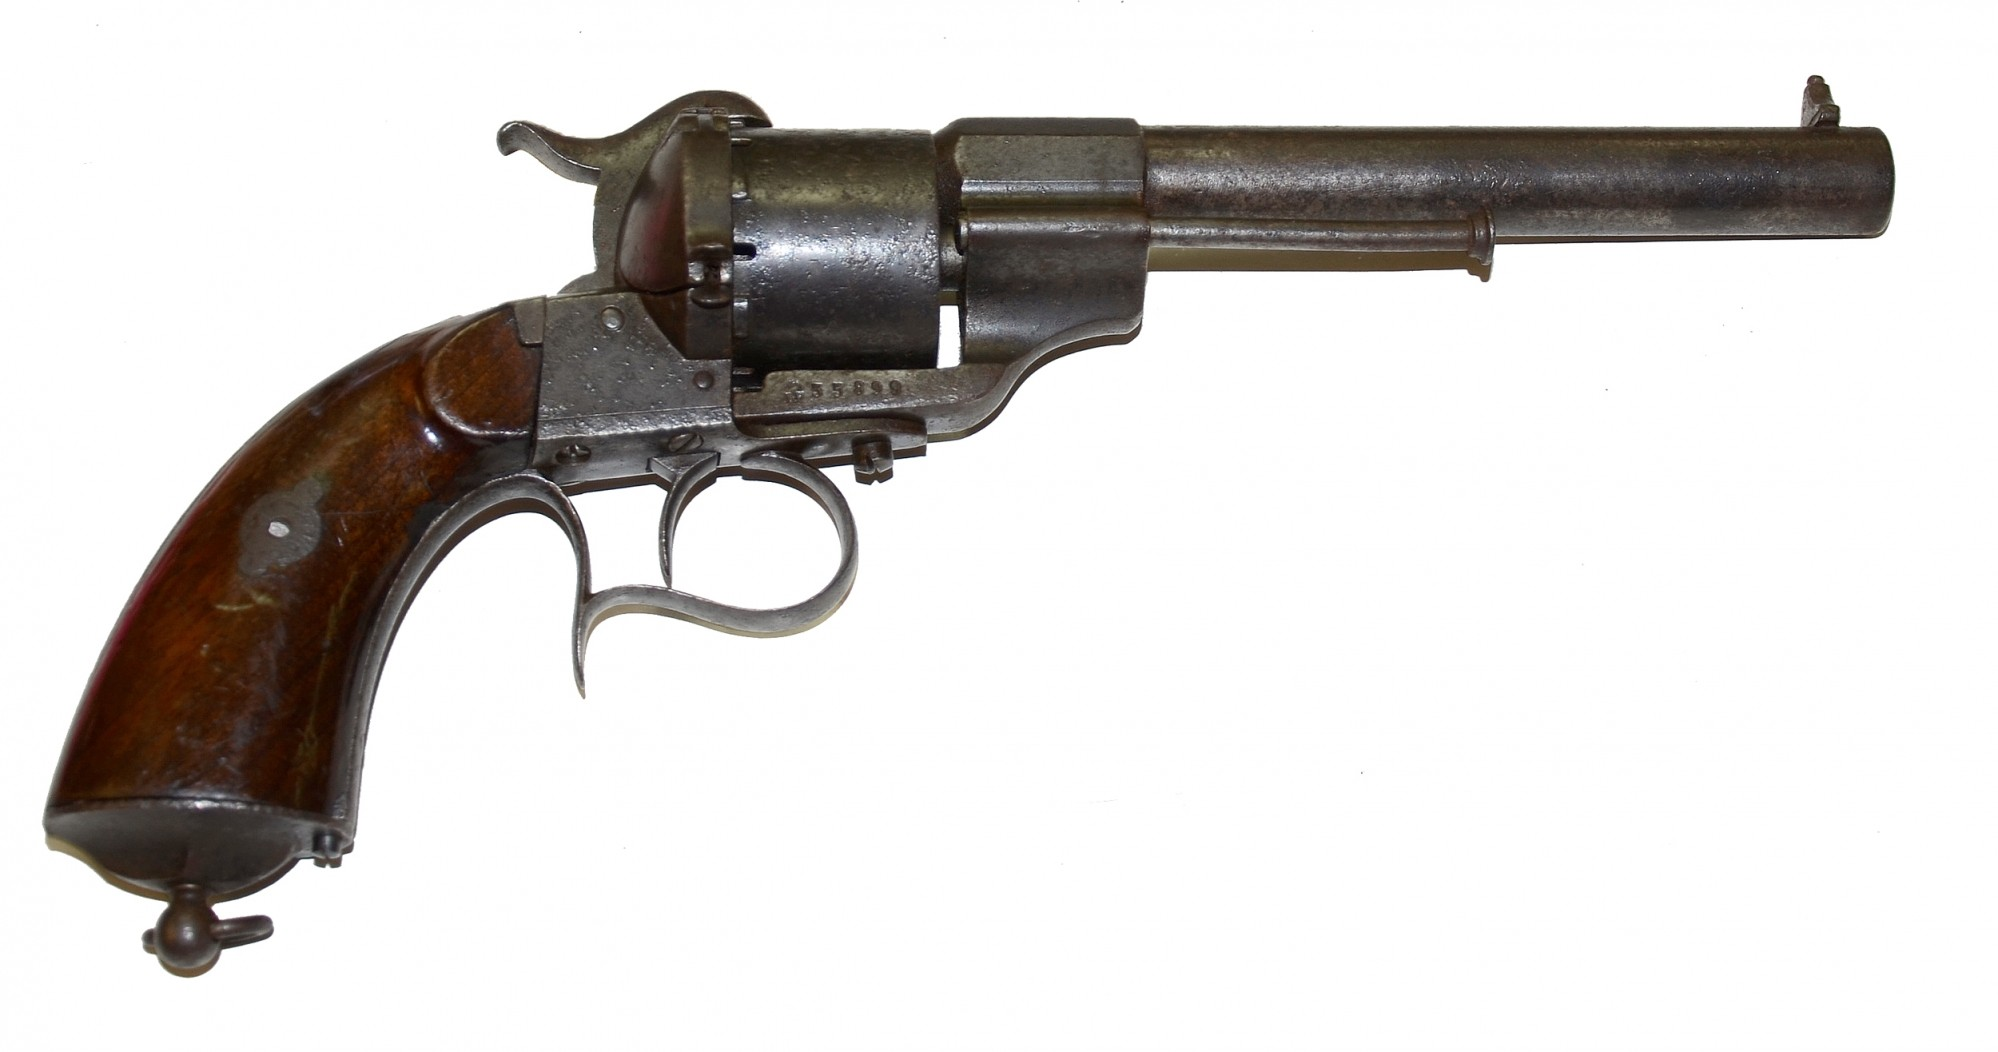 LEFAUCHEUX PINFIRE REVOLVER IDENTIFIED TO SERGEANT WILLIAM O. BLANCHARD, 9TH MISSOURI UNION CAVALRY